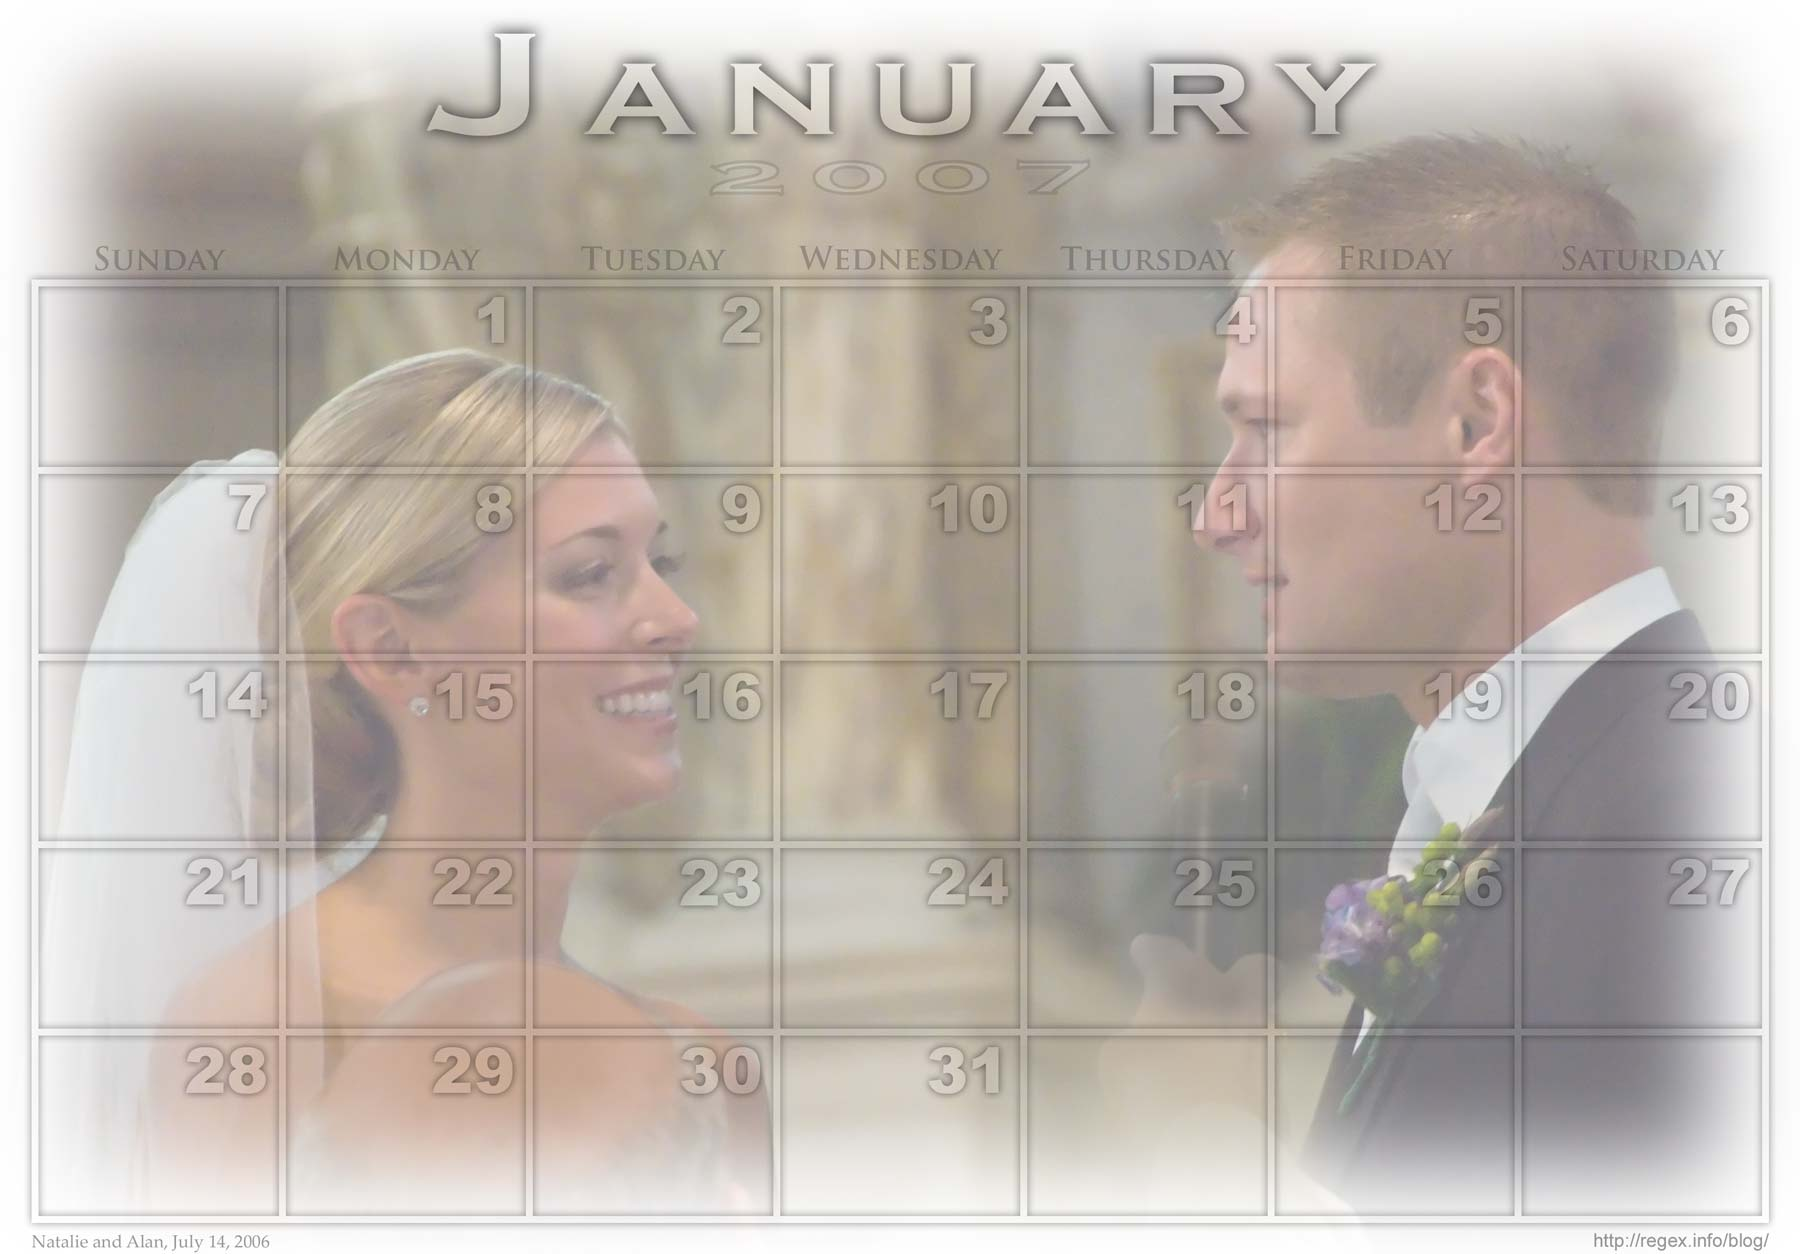 Photo-calendar created with Jeffrey's Photoshop Calendar-Building